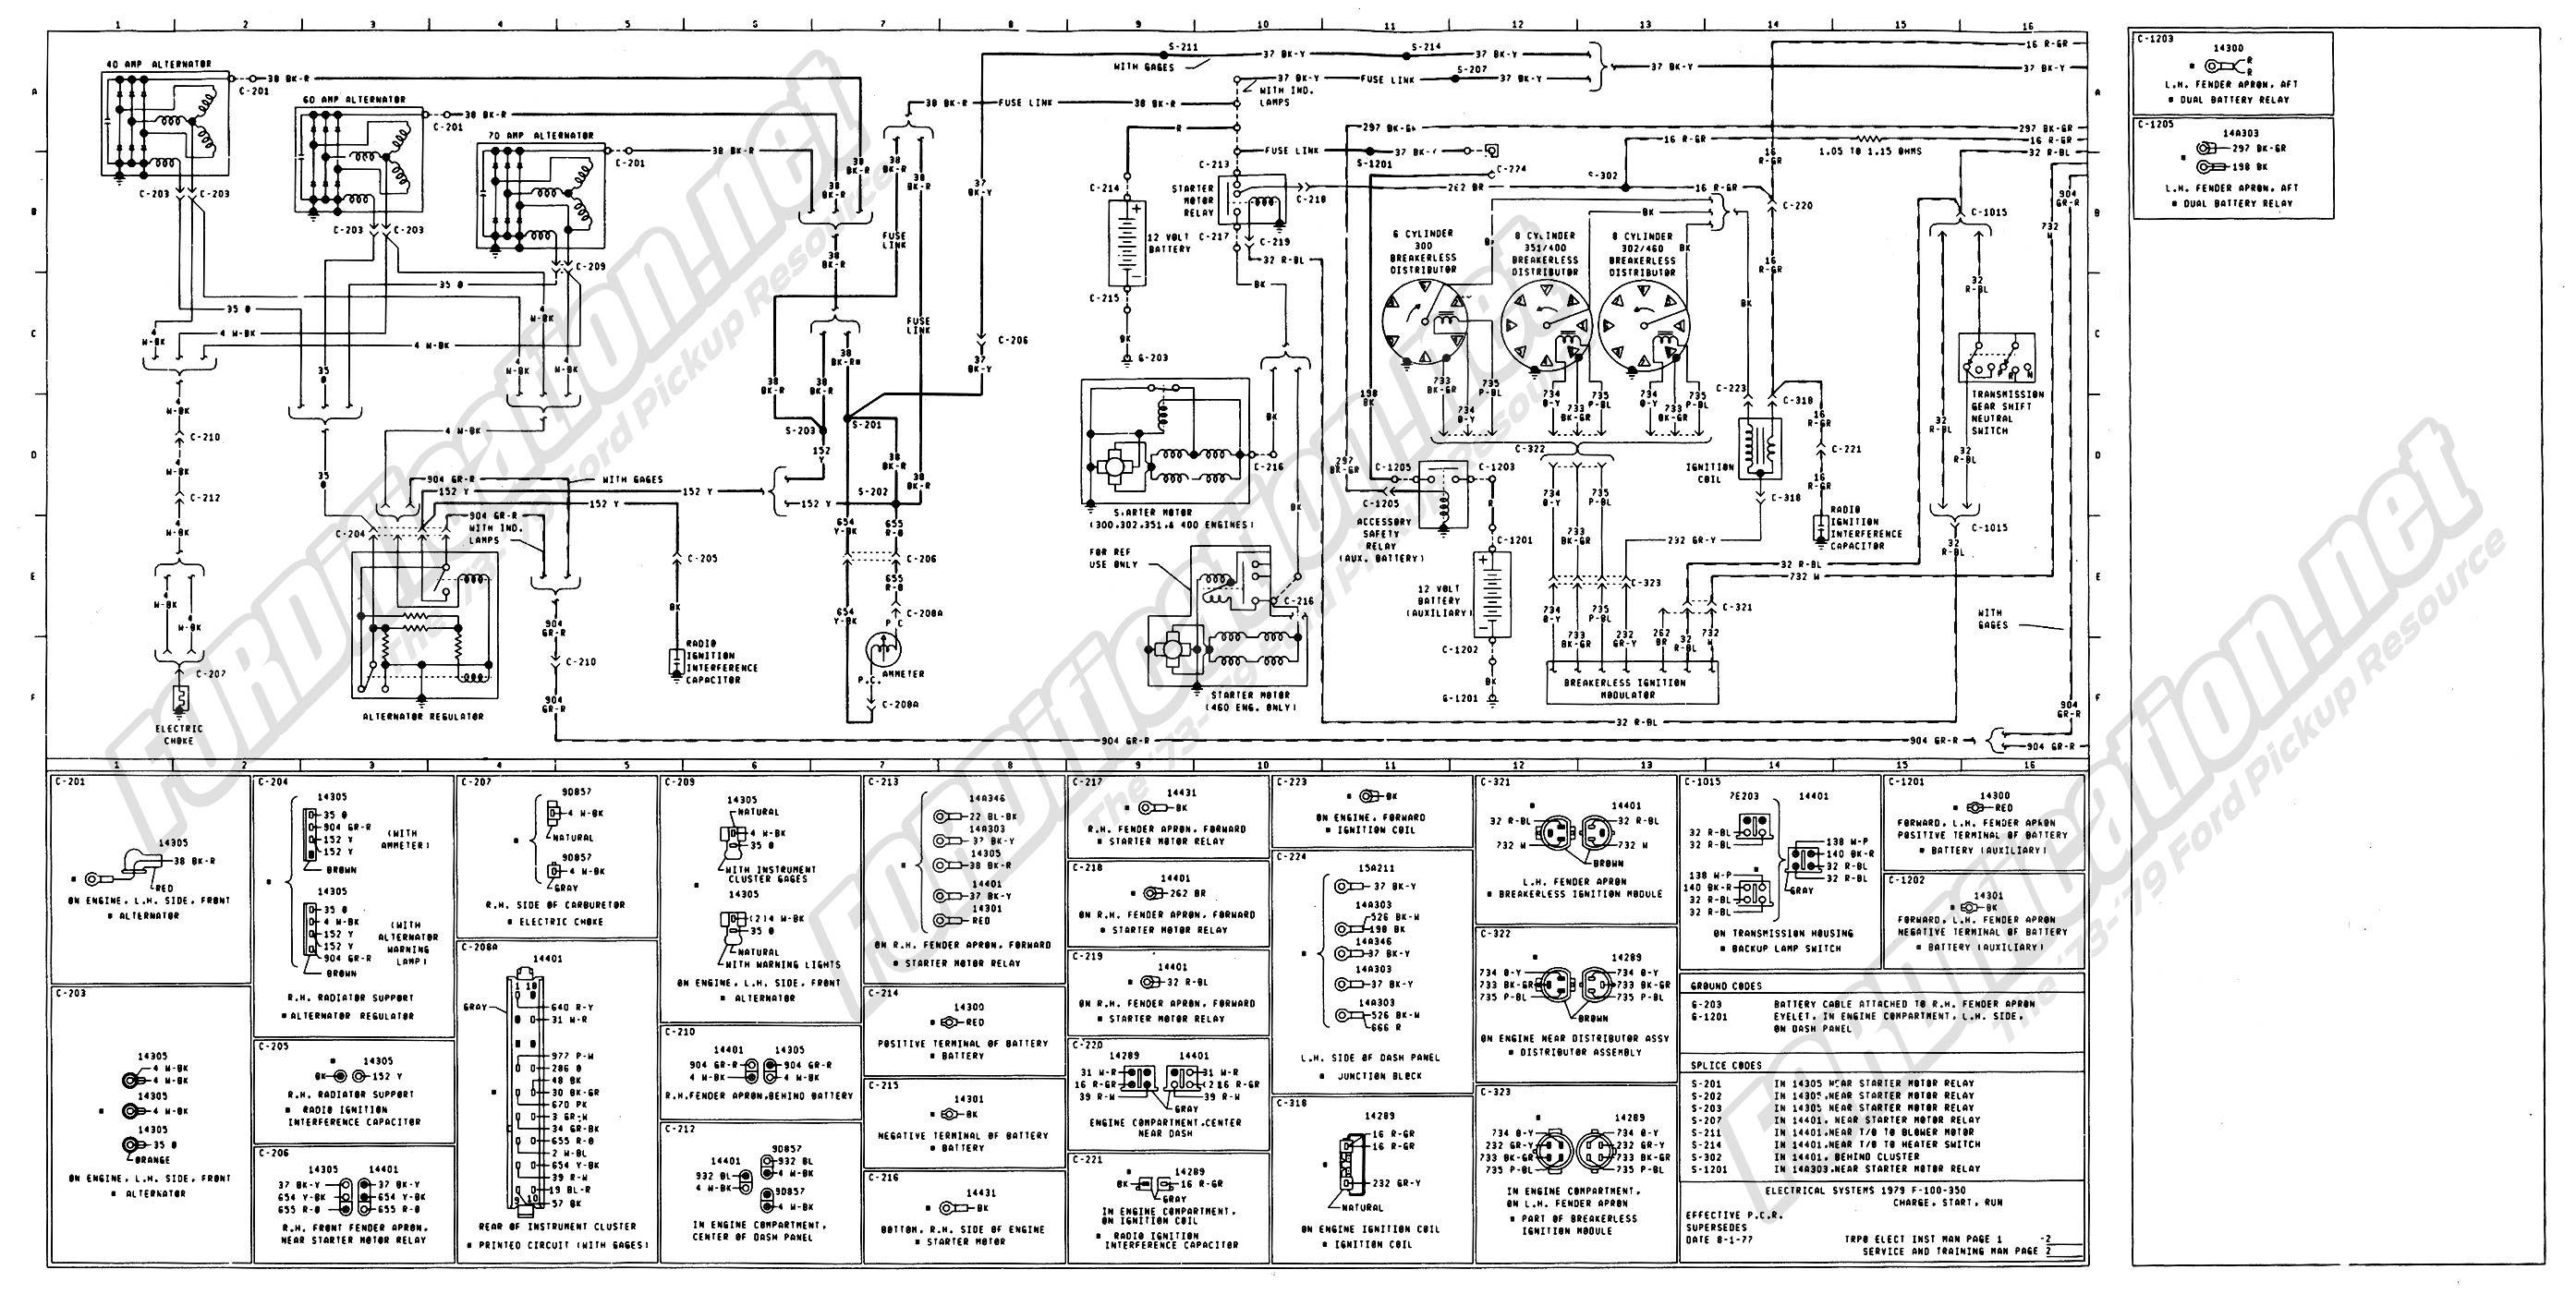 93 Ford F 150 Tfi Wiring Diagram Library 1987 1975 F100 Electrical List Of Schematic Circuit U2022 1974